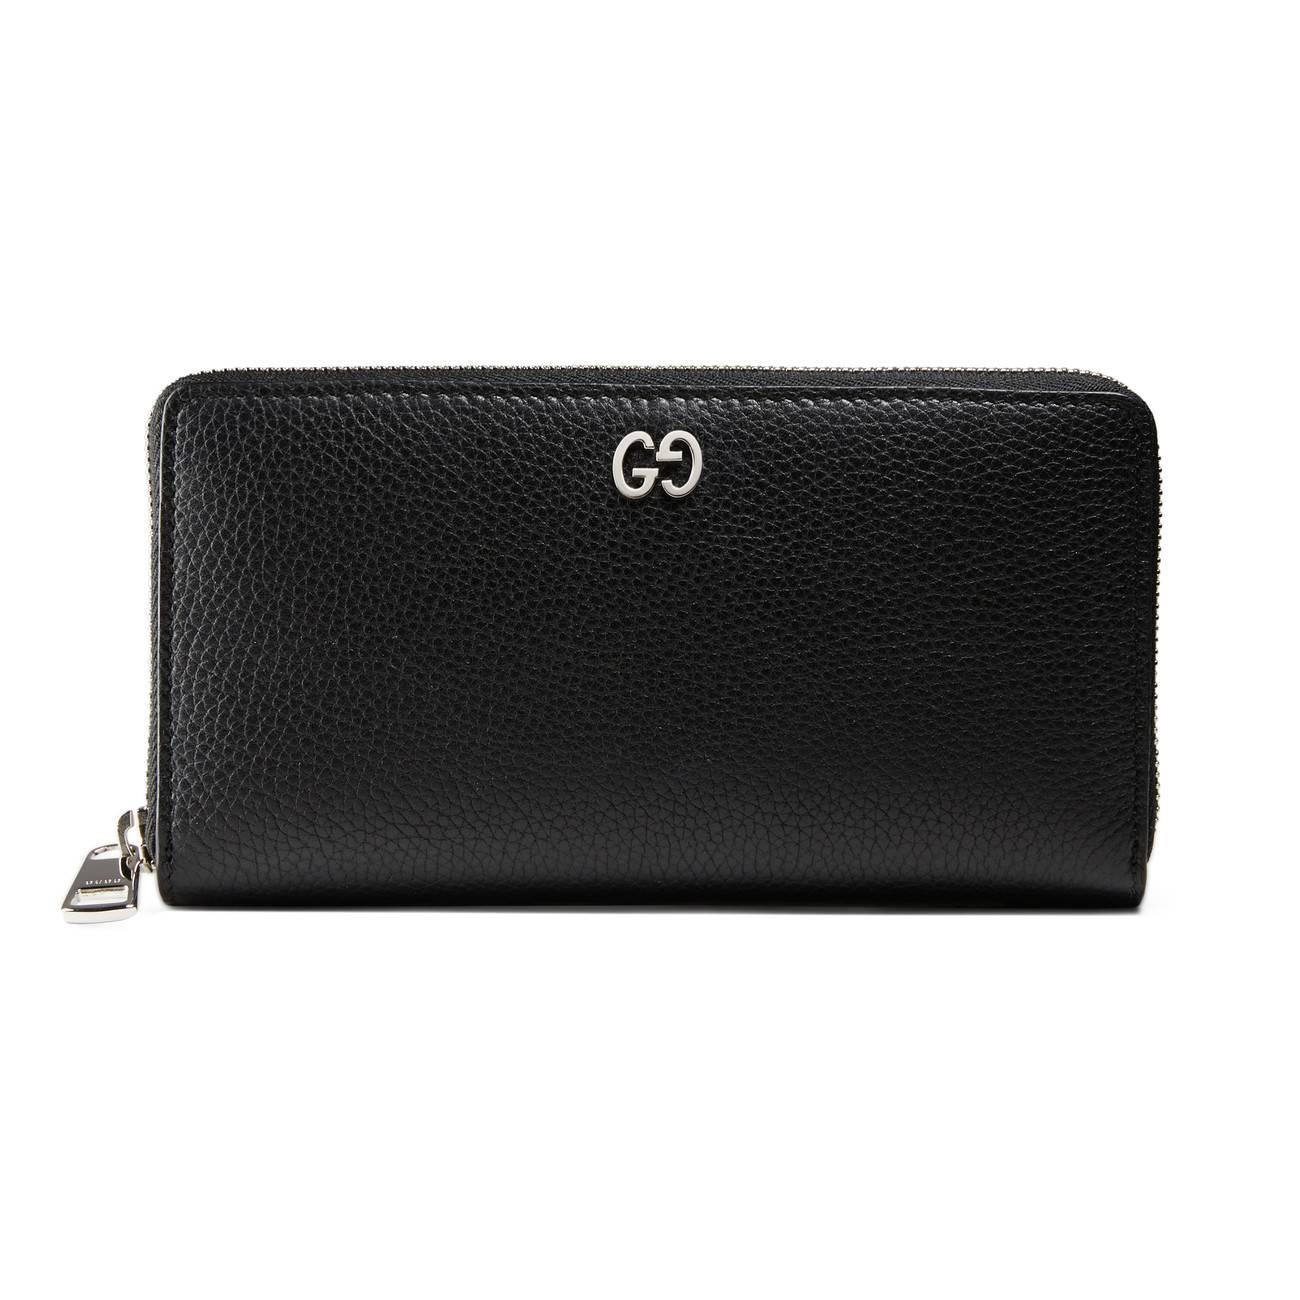 3722202a6d9 Lyst - Gucci Leather Zip Around Wallet in Black for Men